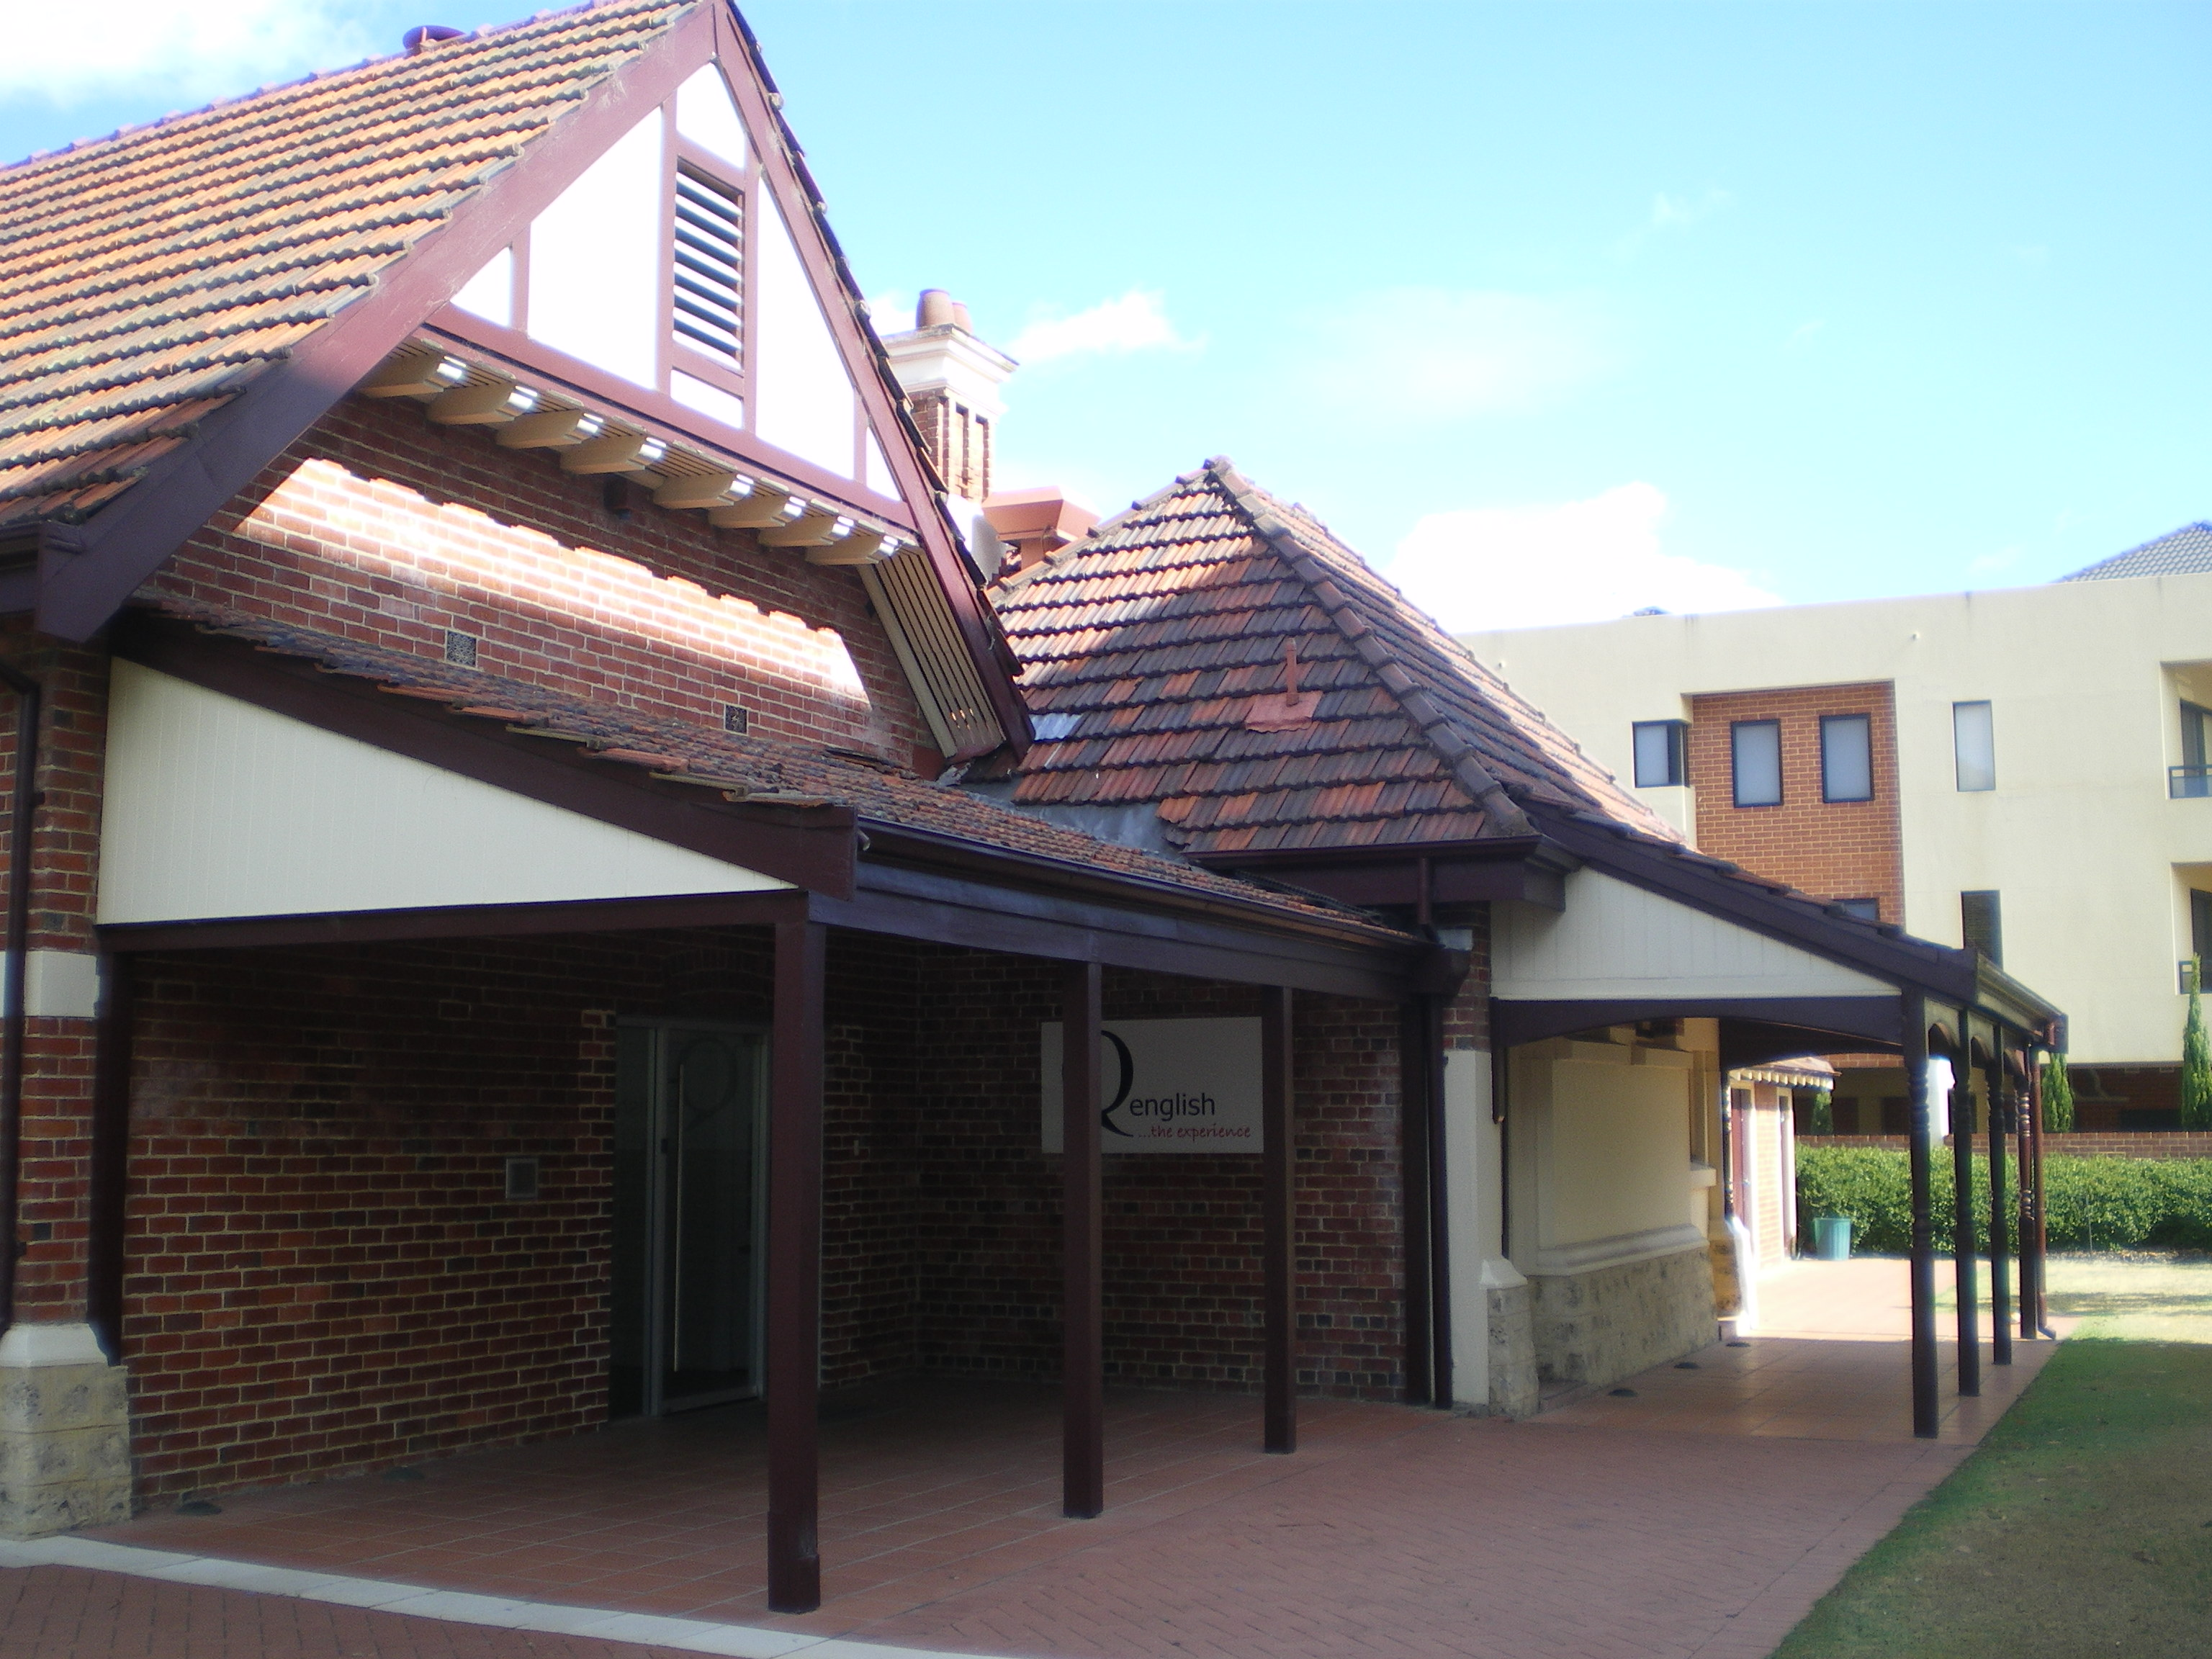 Corner View of Current Entrance